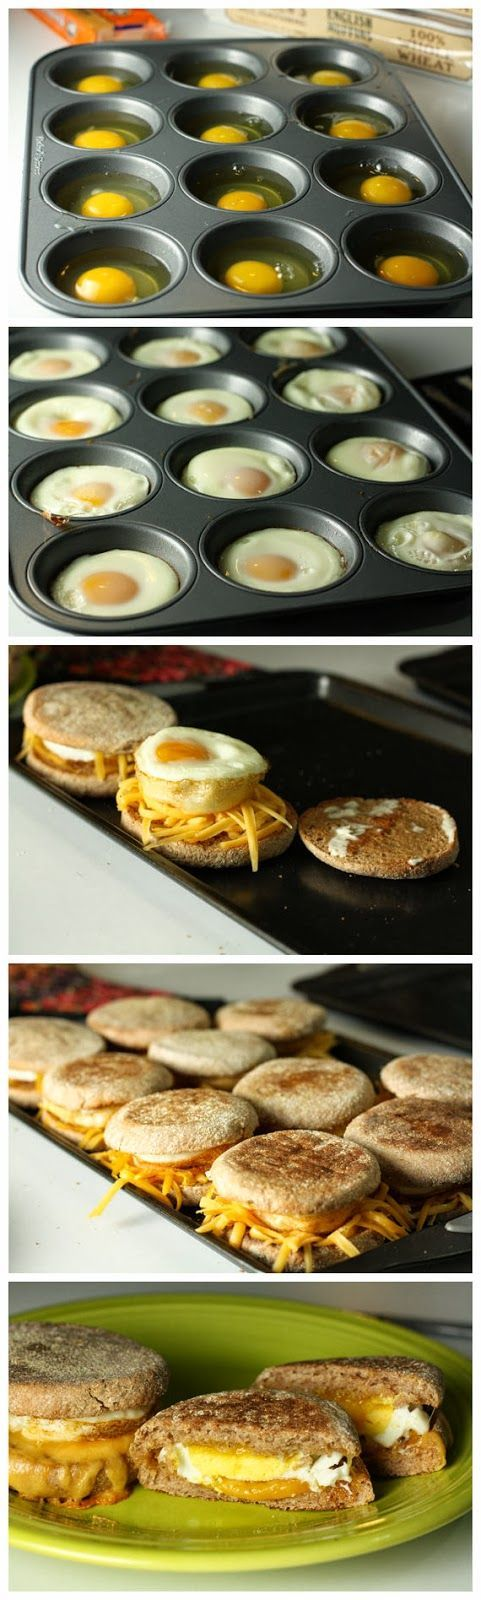 Egg and Cheese Breakfast Sandwiches in bulk for brunch/breakfast parties.